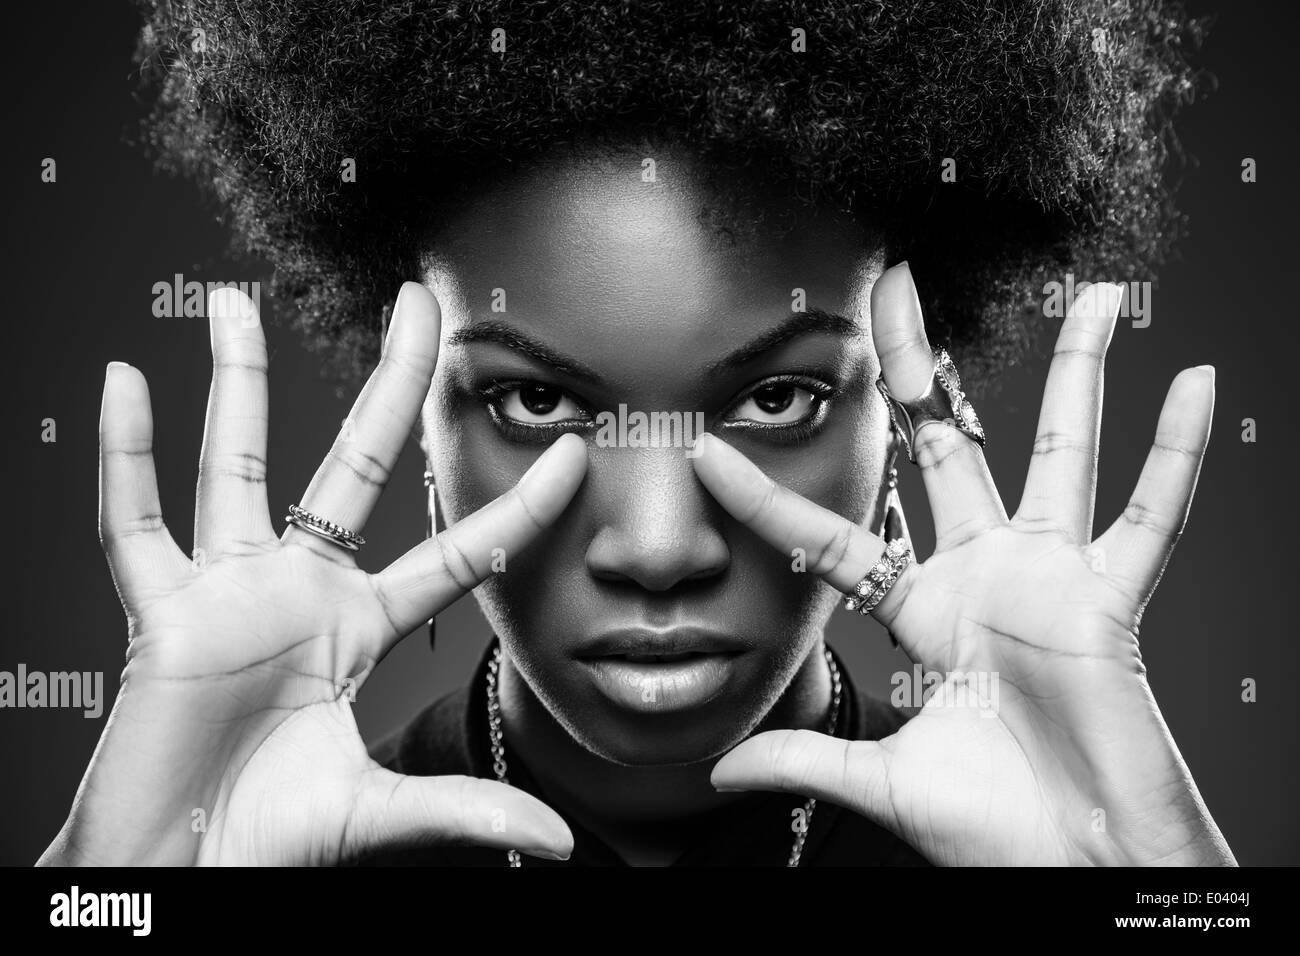 Black beauty in black and white - Stock Image